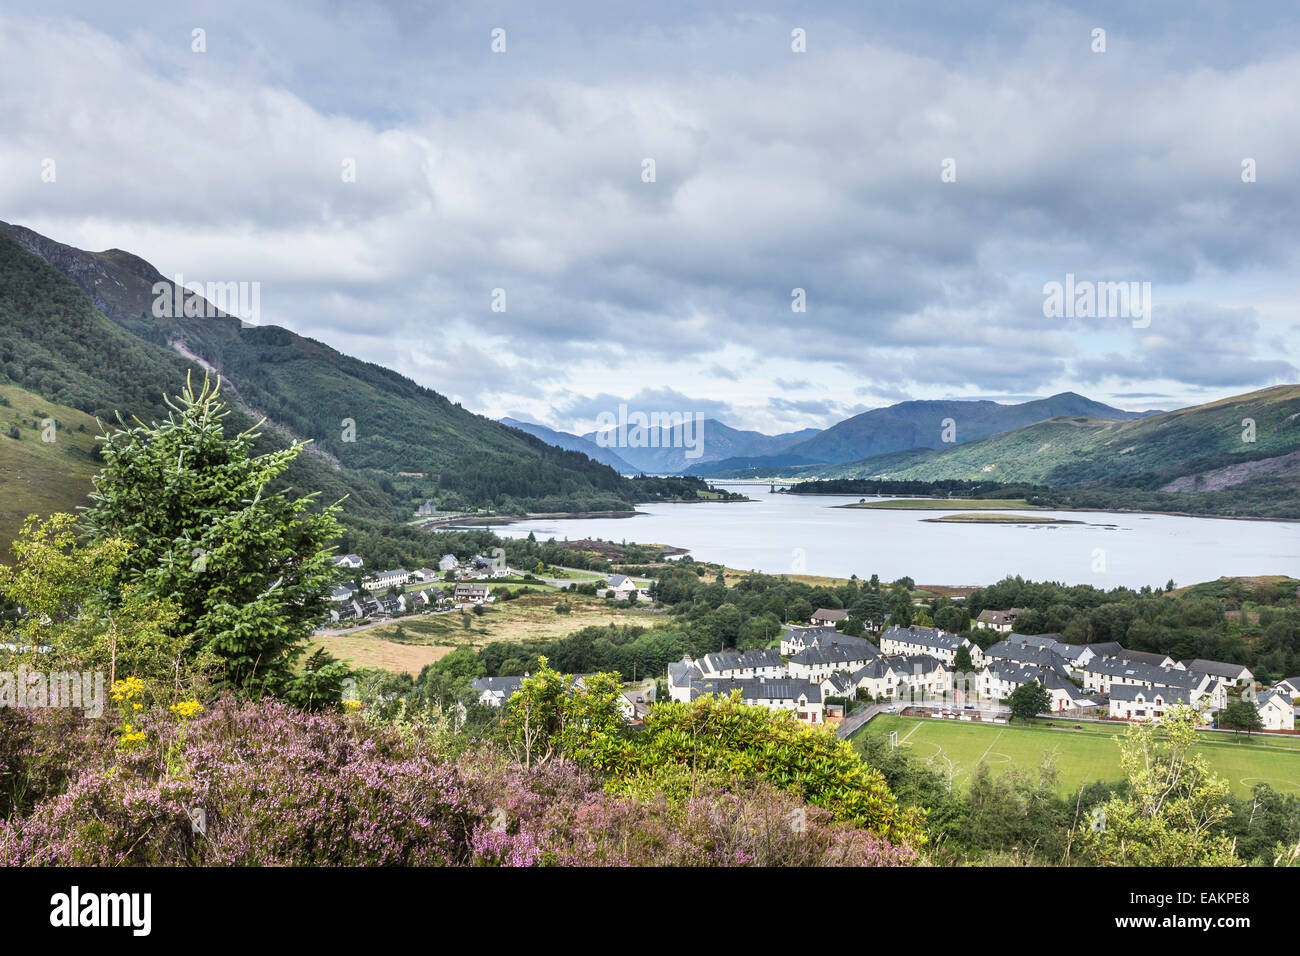 View Over Ballachulish & Loch Leven. - Stock Image